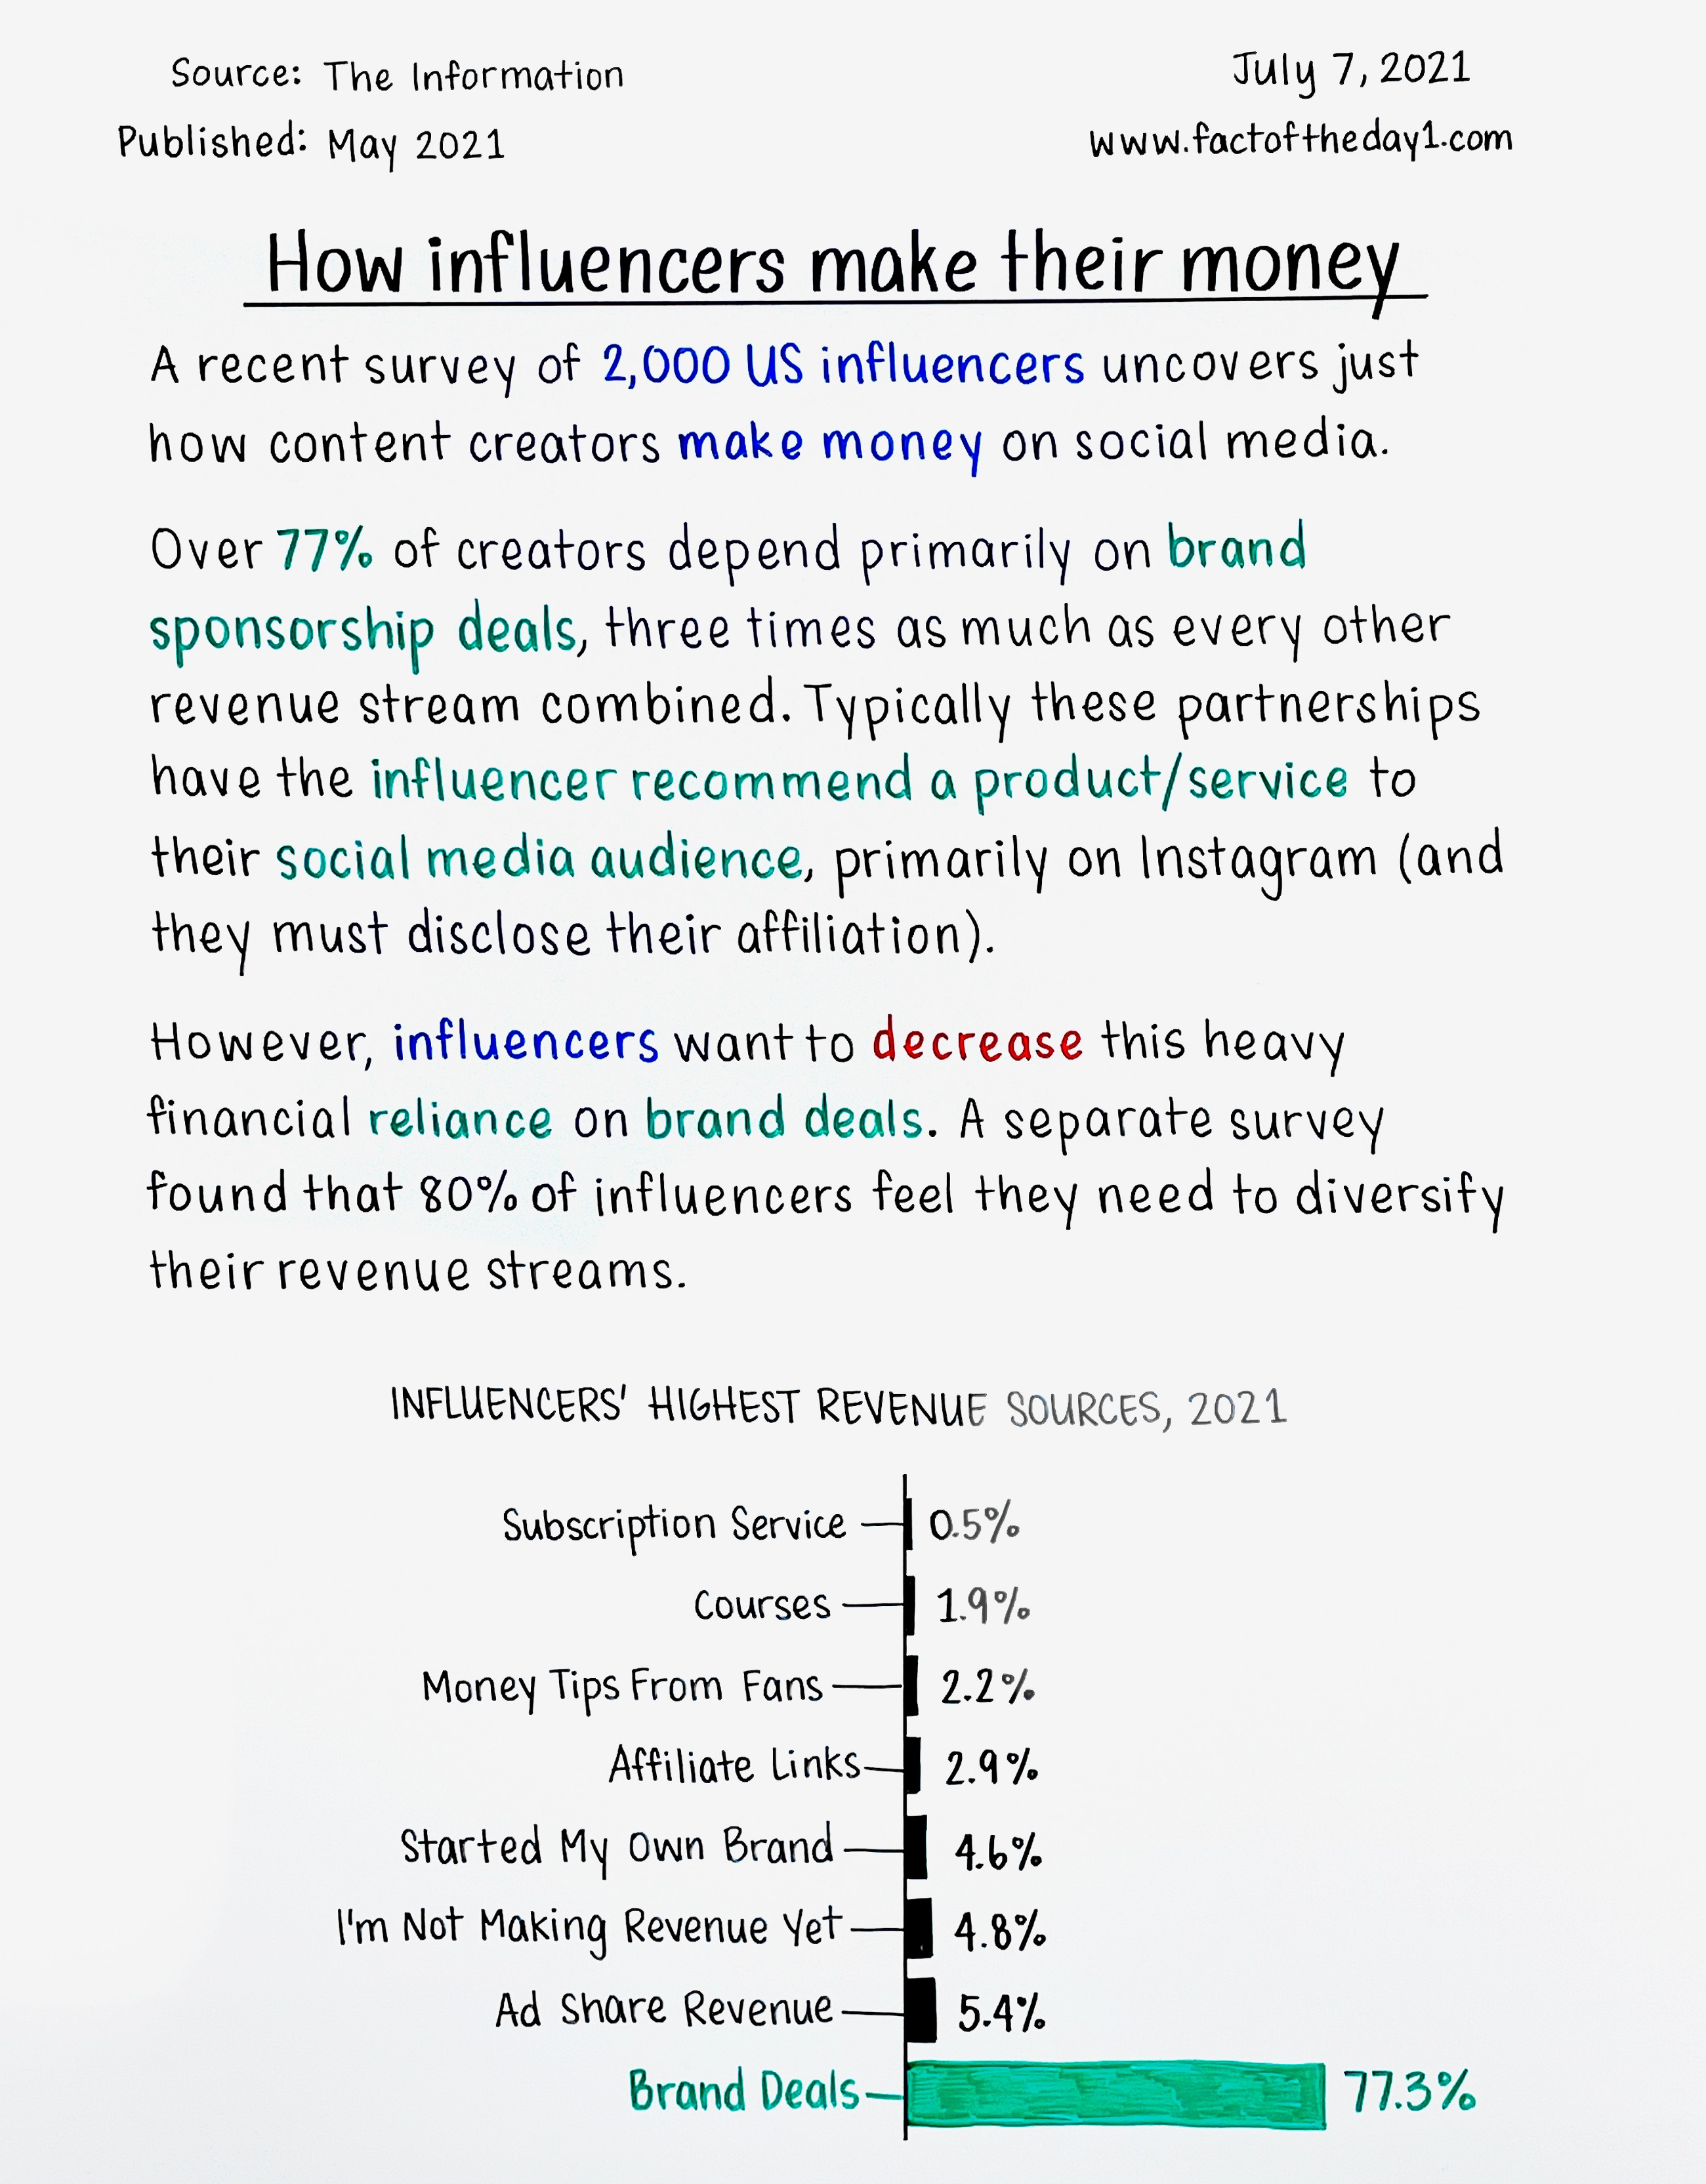 July 7: How influencers make their money